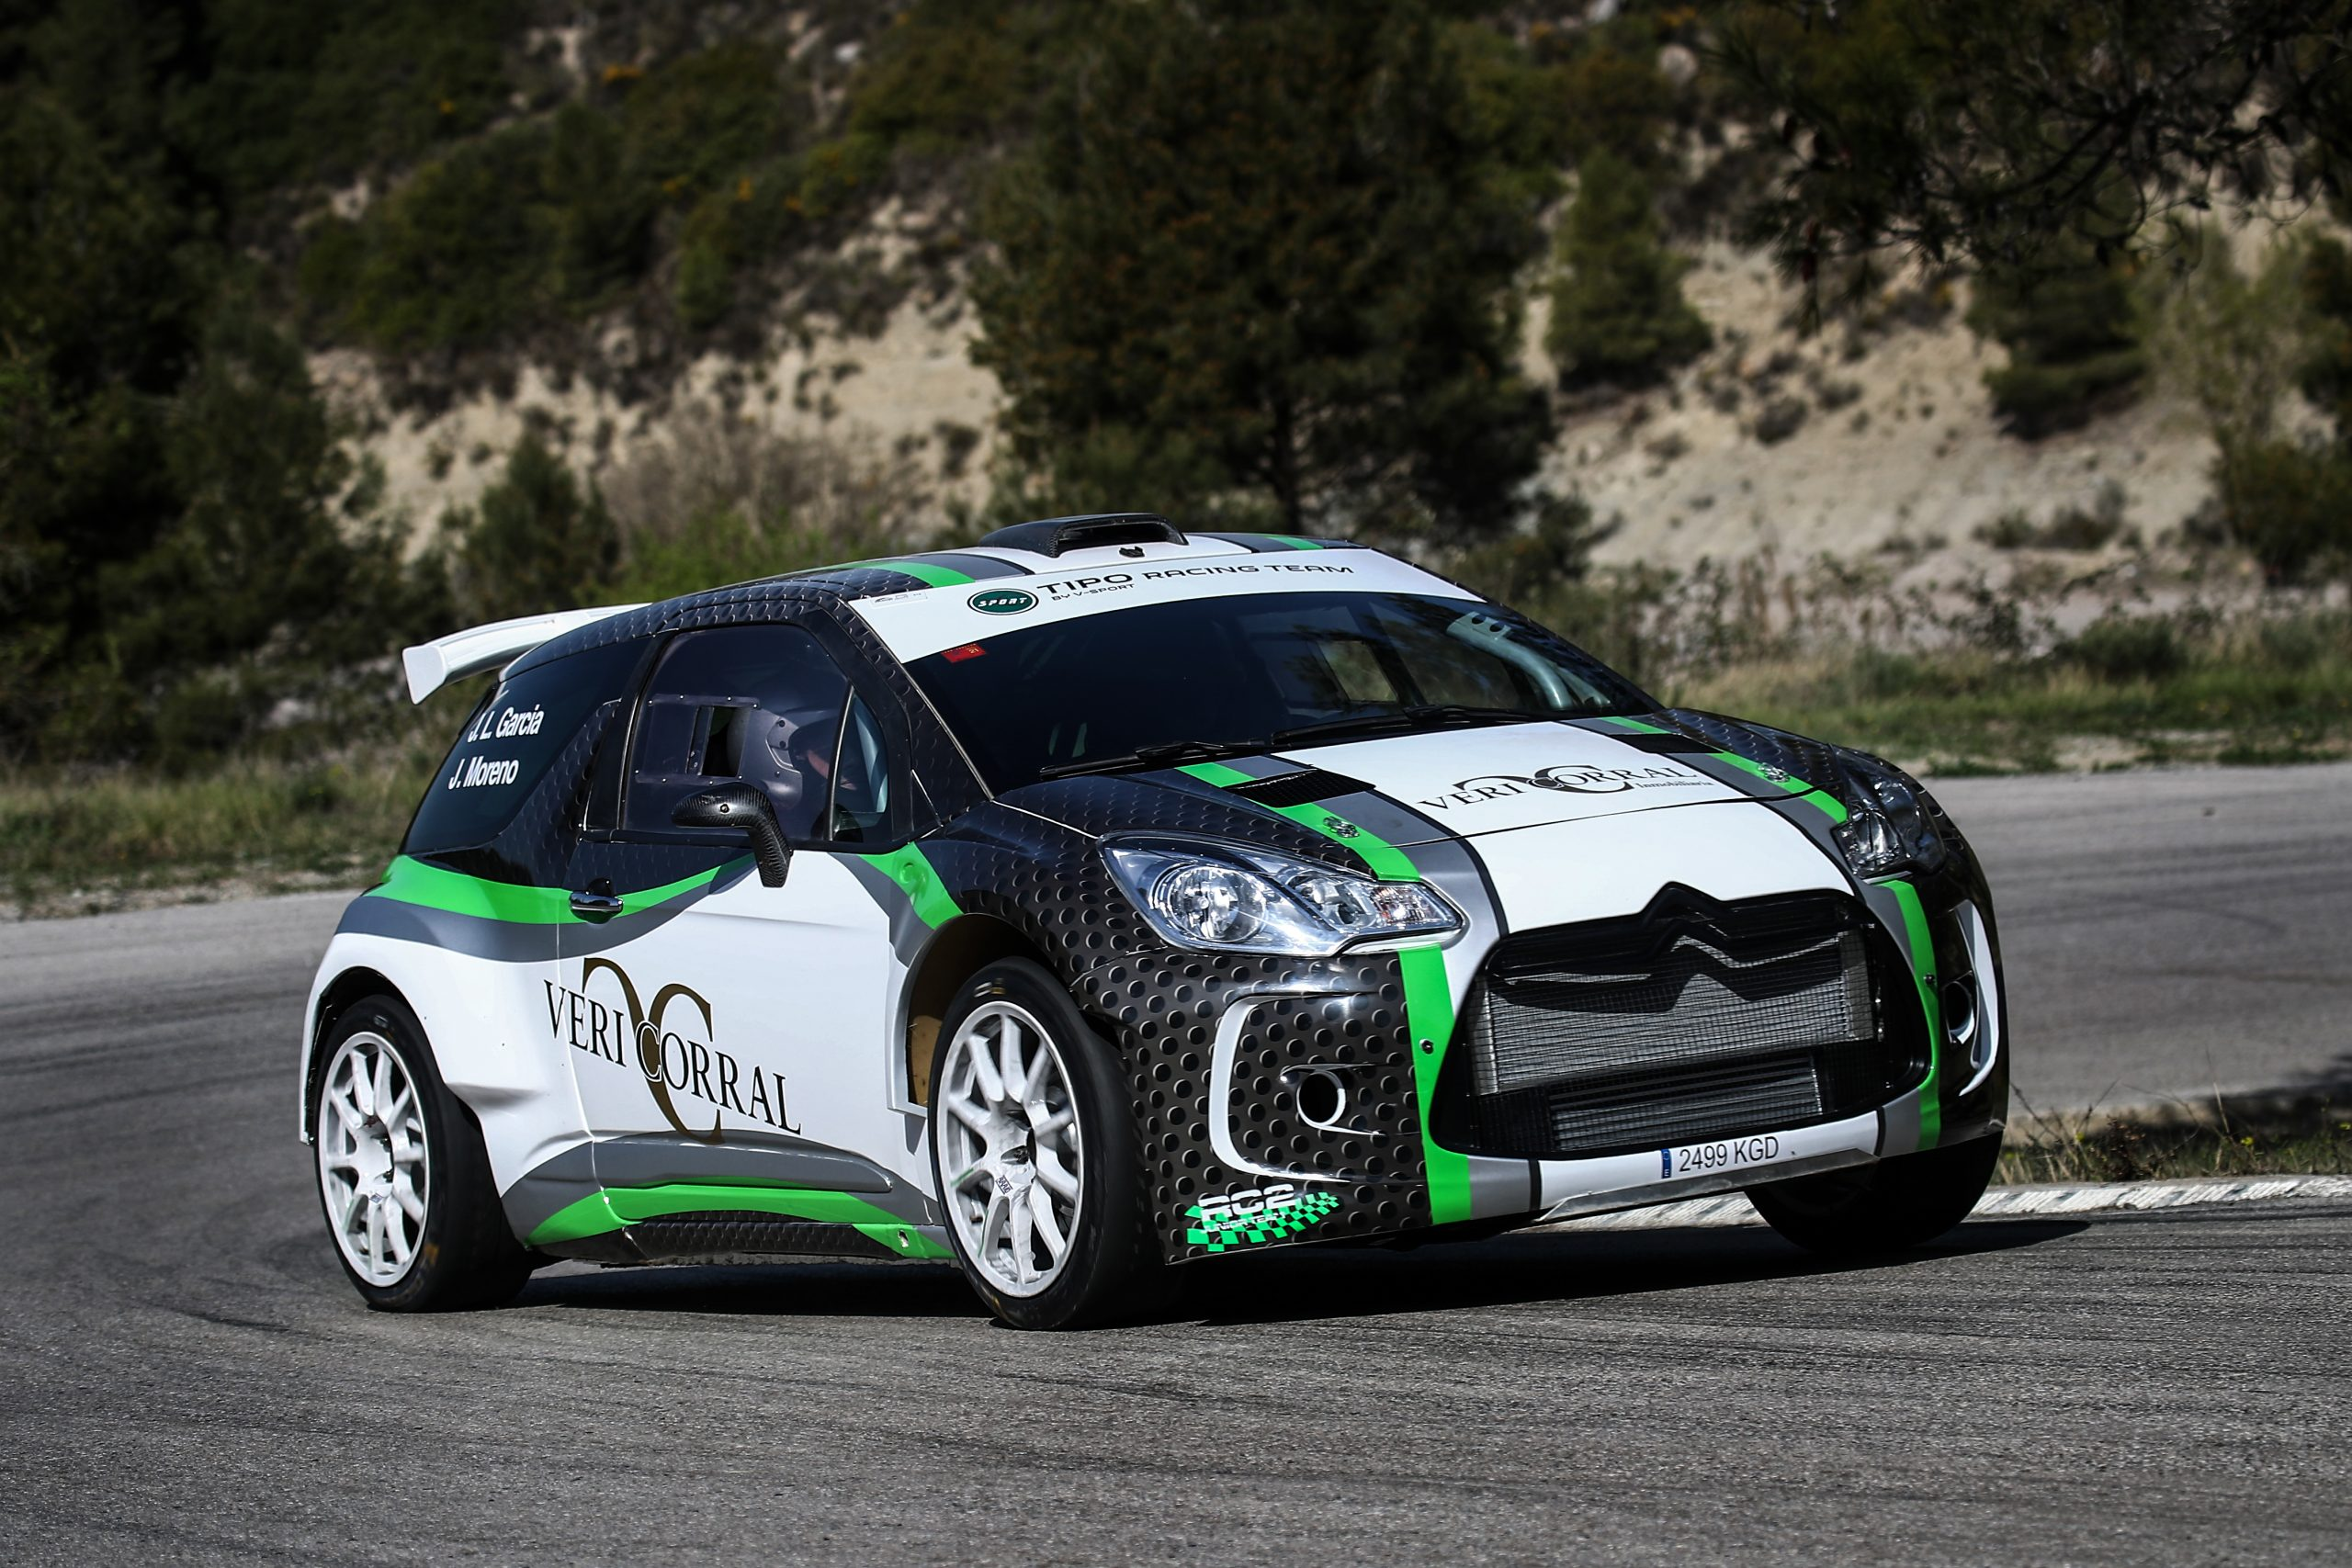 García delighted to be part of 'important moment in motorsport' as FIA RX2e gears up for debut campaign, QEV